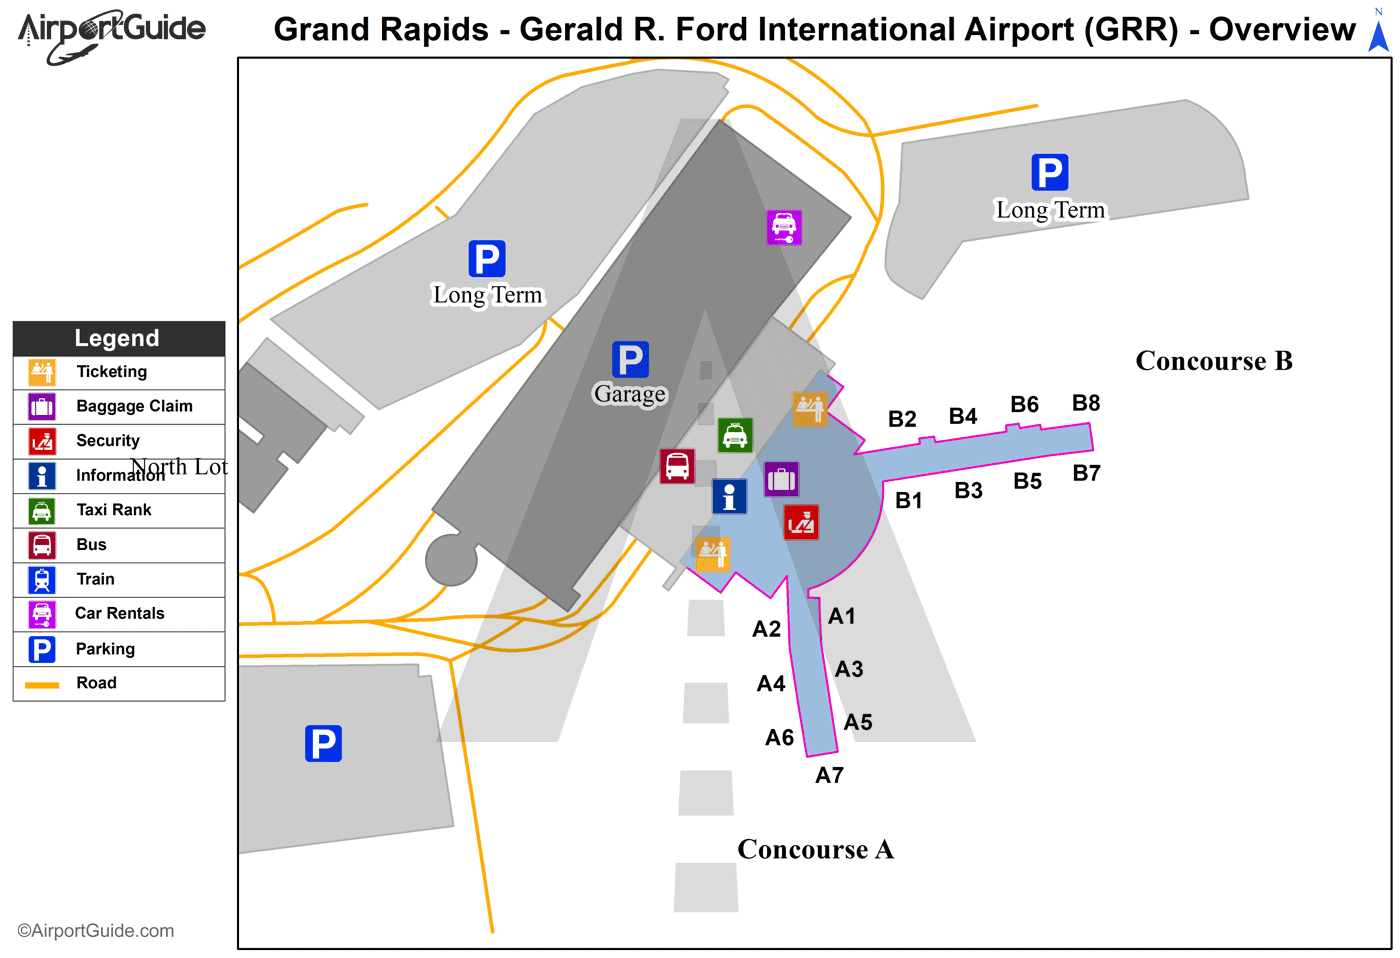 Grand Rapids - Gerald R Ford International (GRR) Airport Terminal Map - Overview